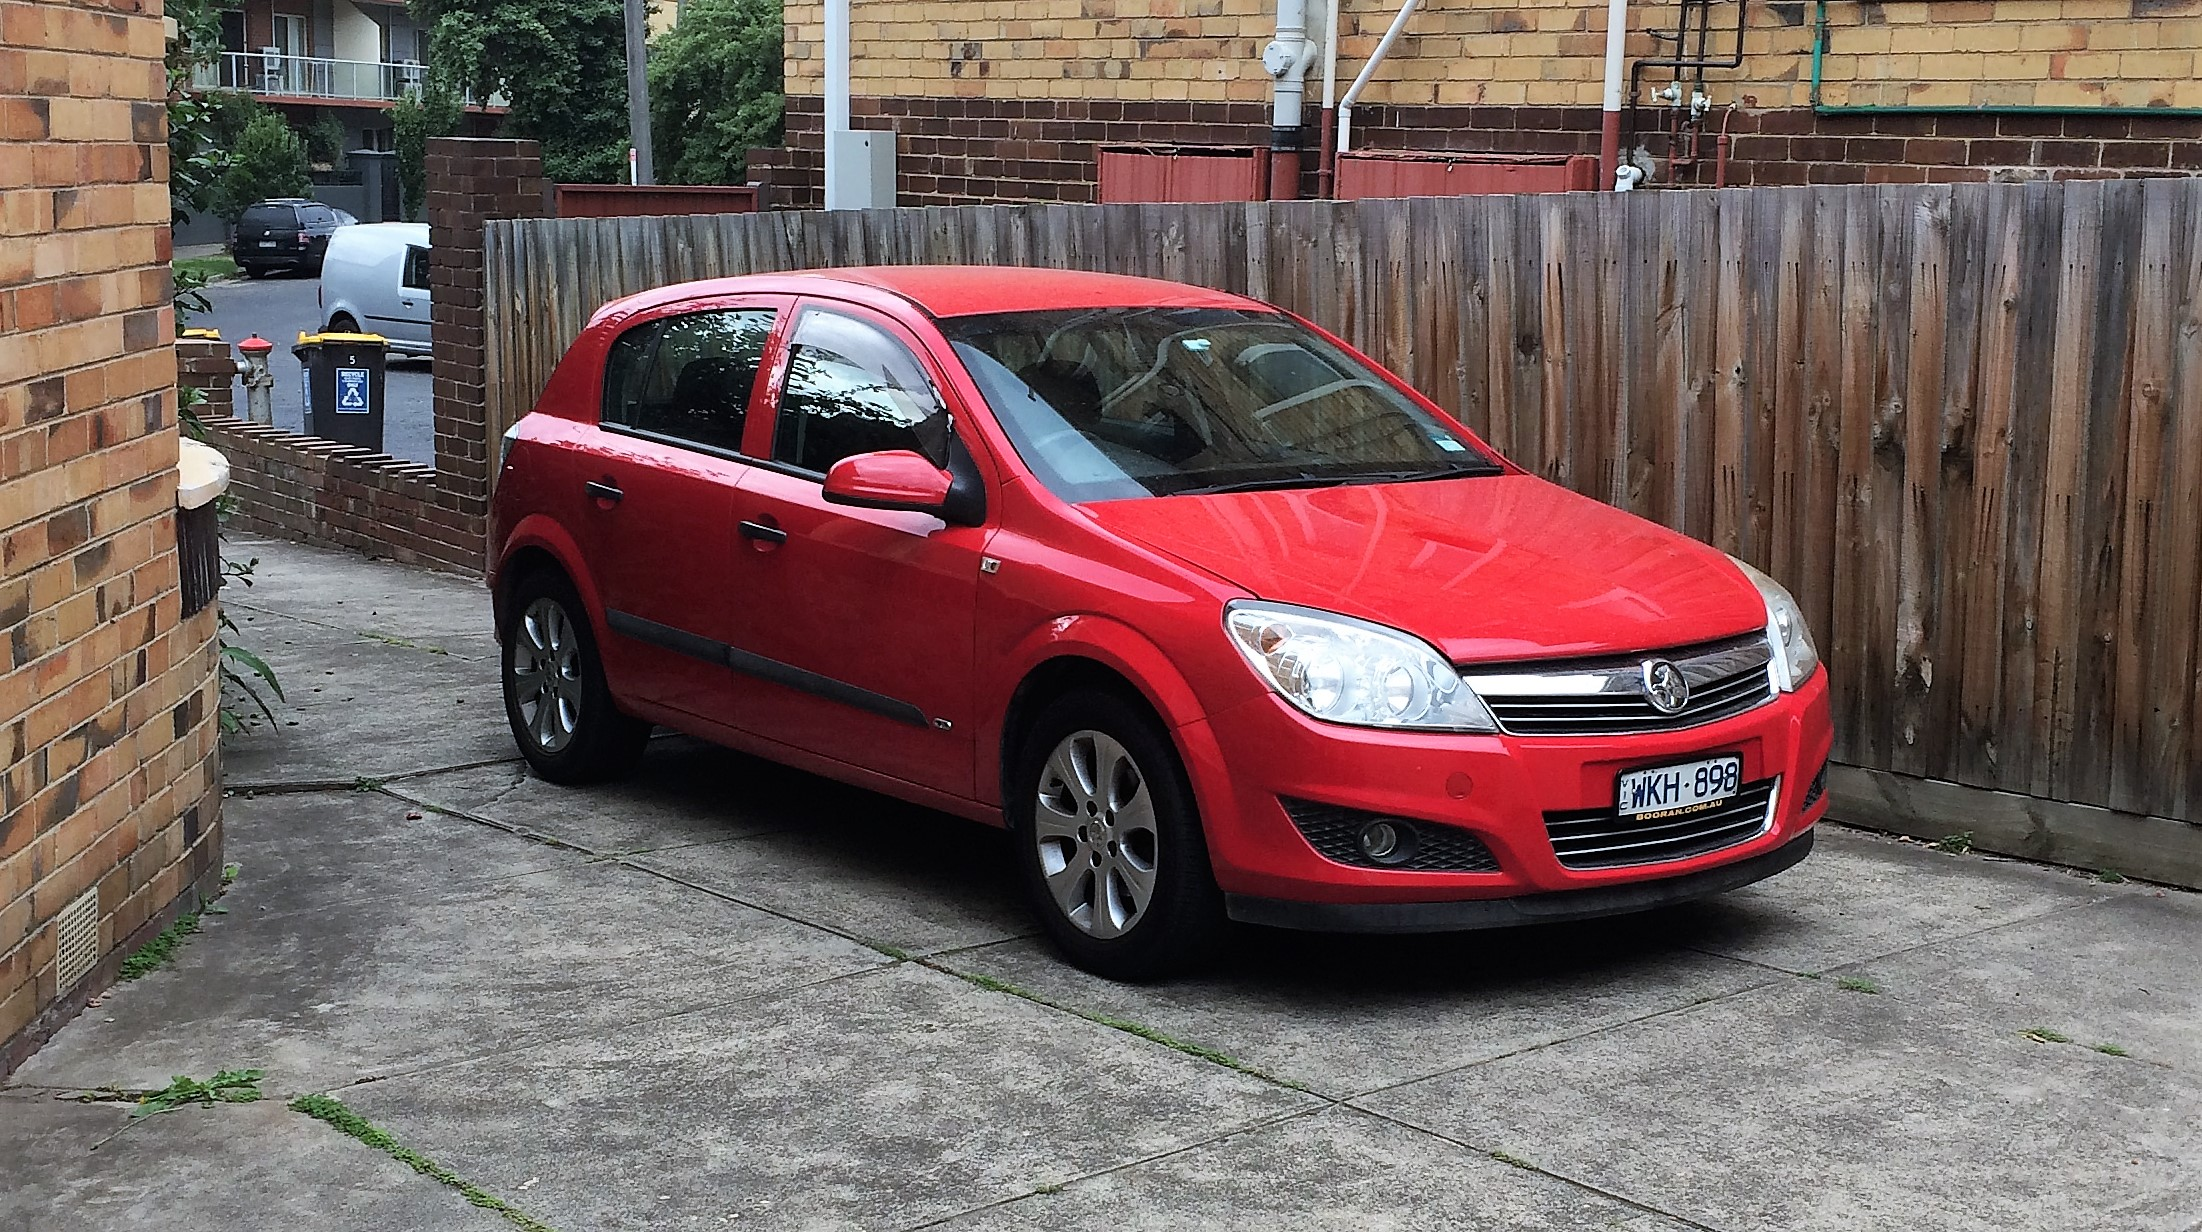 Picture of Alitta's 2008 Holden Astra